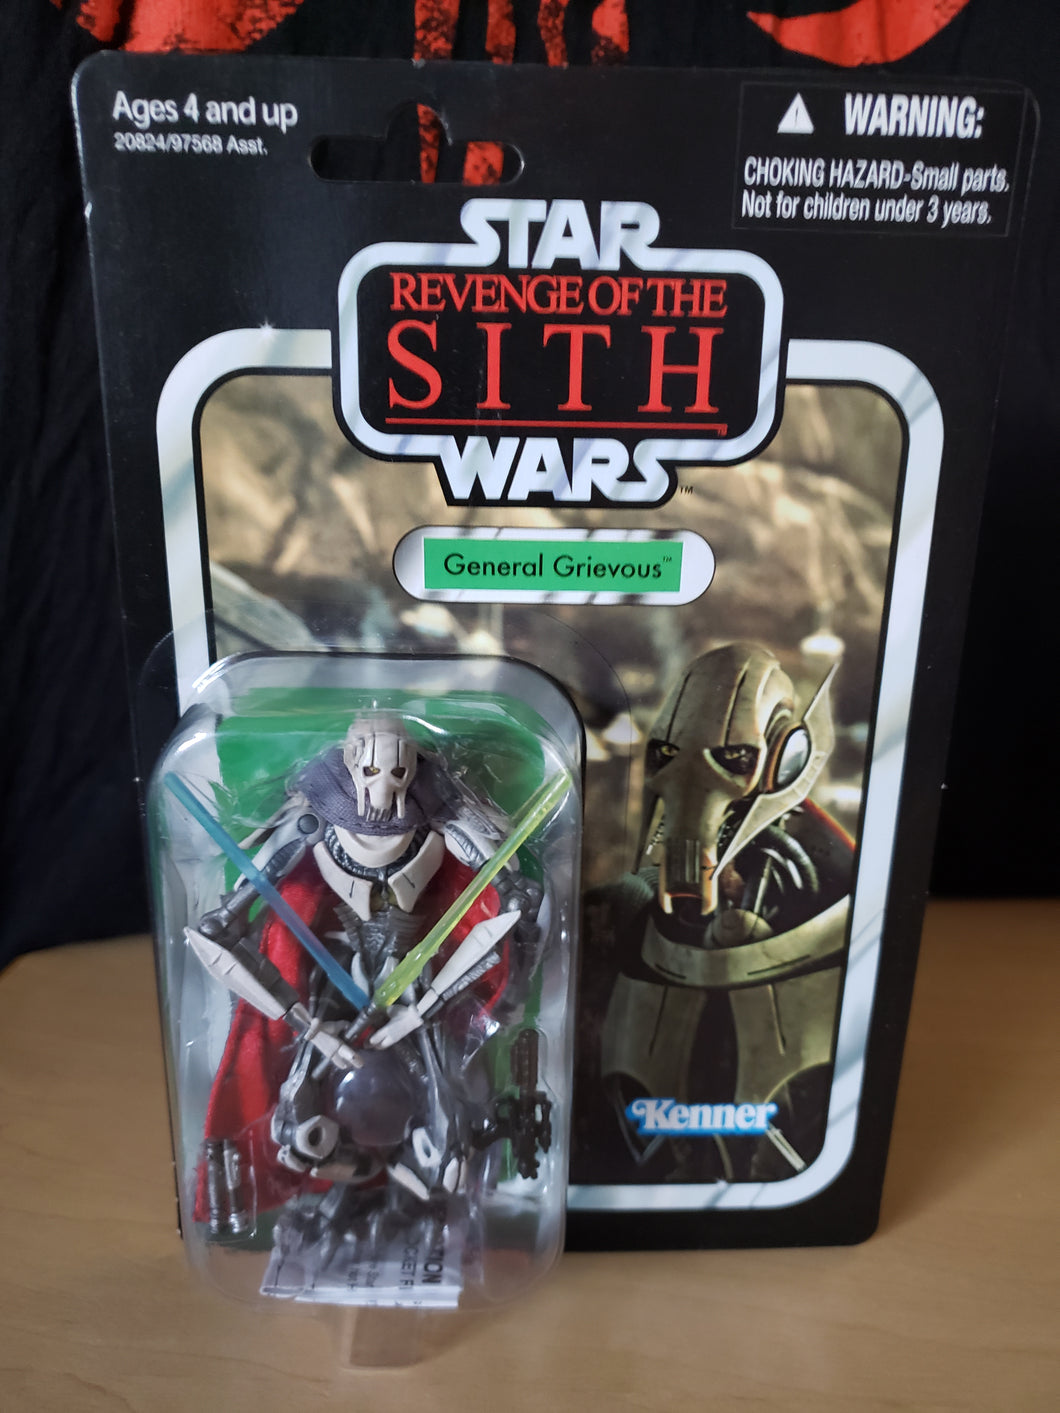 2010 Star Wars TVC Revenge of the Sith - General Grievous VC17